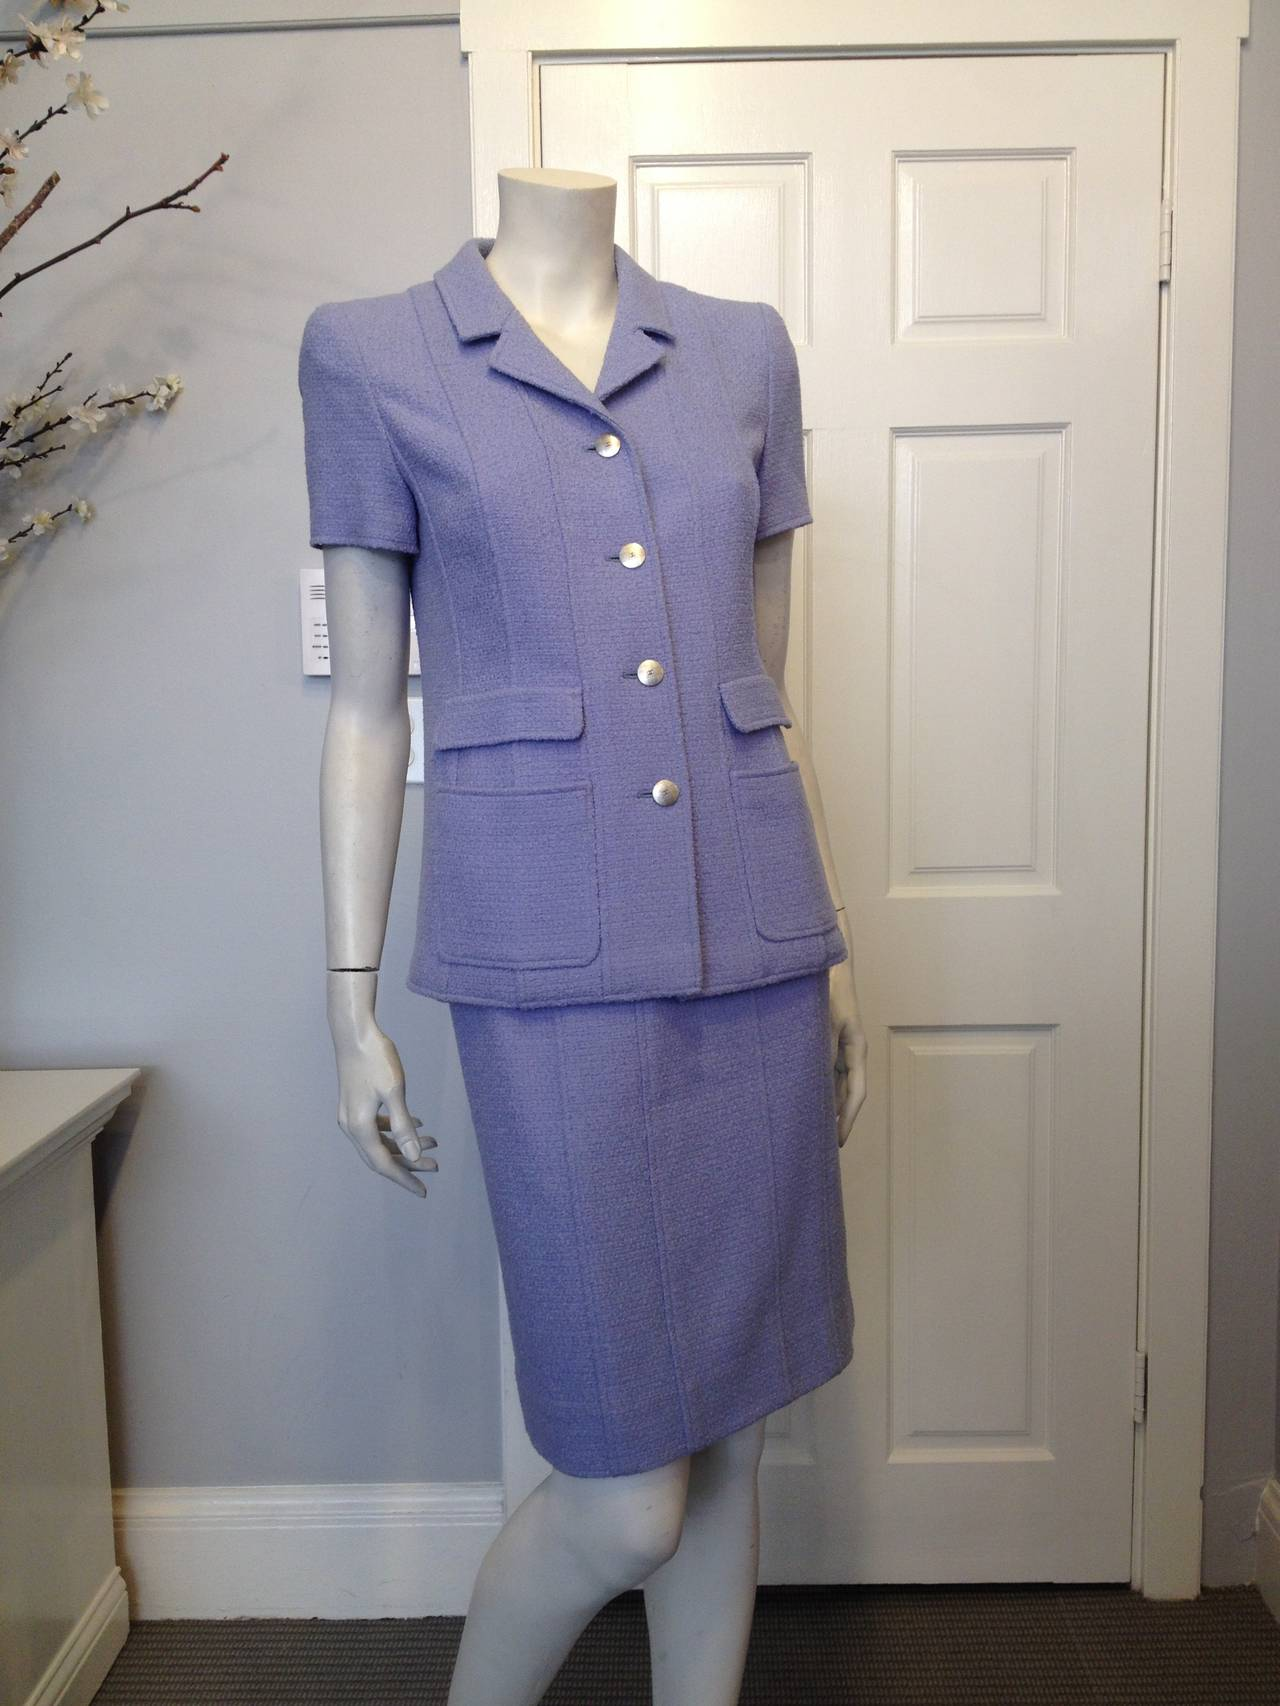 chanel periwinkle blue tweed skirt suit for sale at 1stdibs